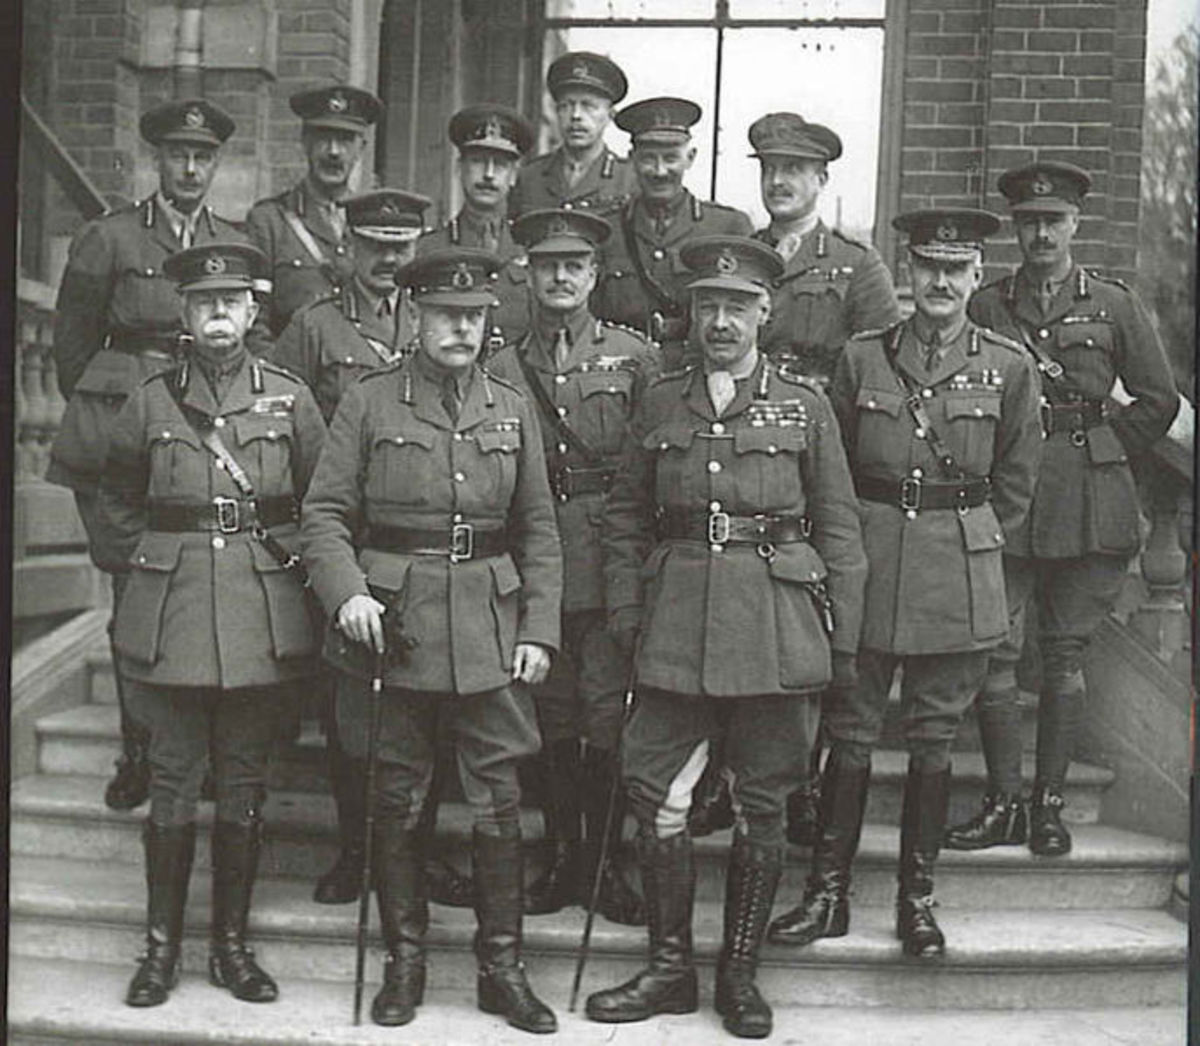 The British military brain trust equipped with mandatory mustaches at the war's end.